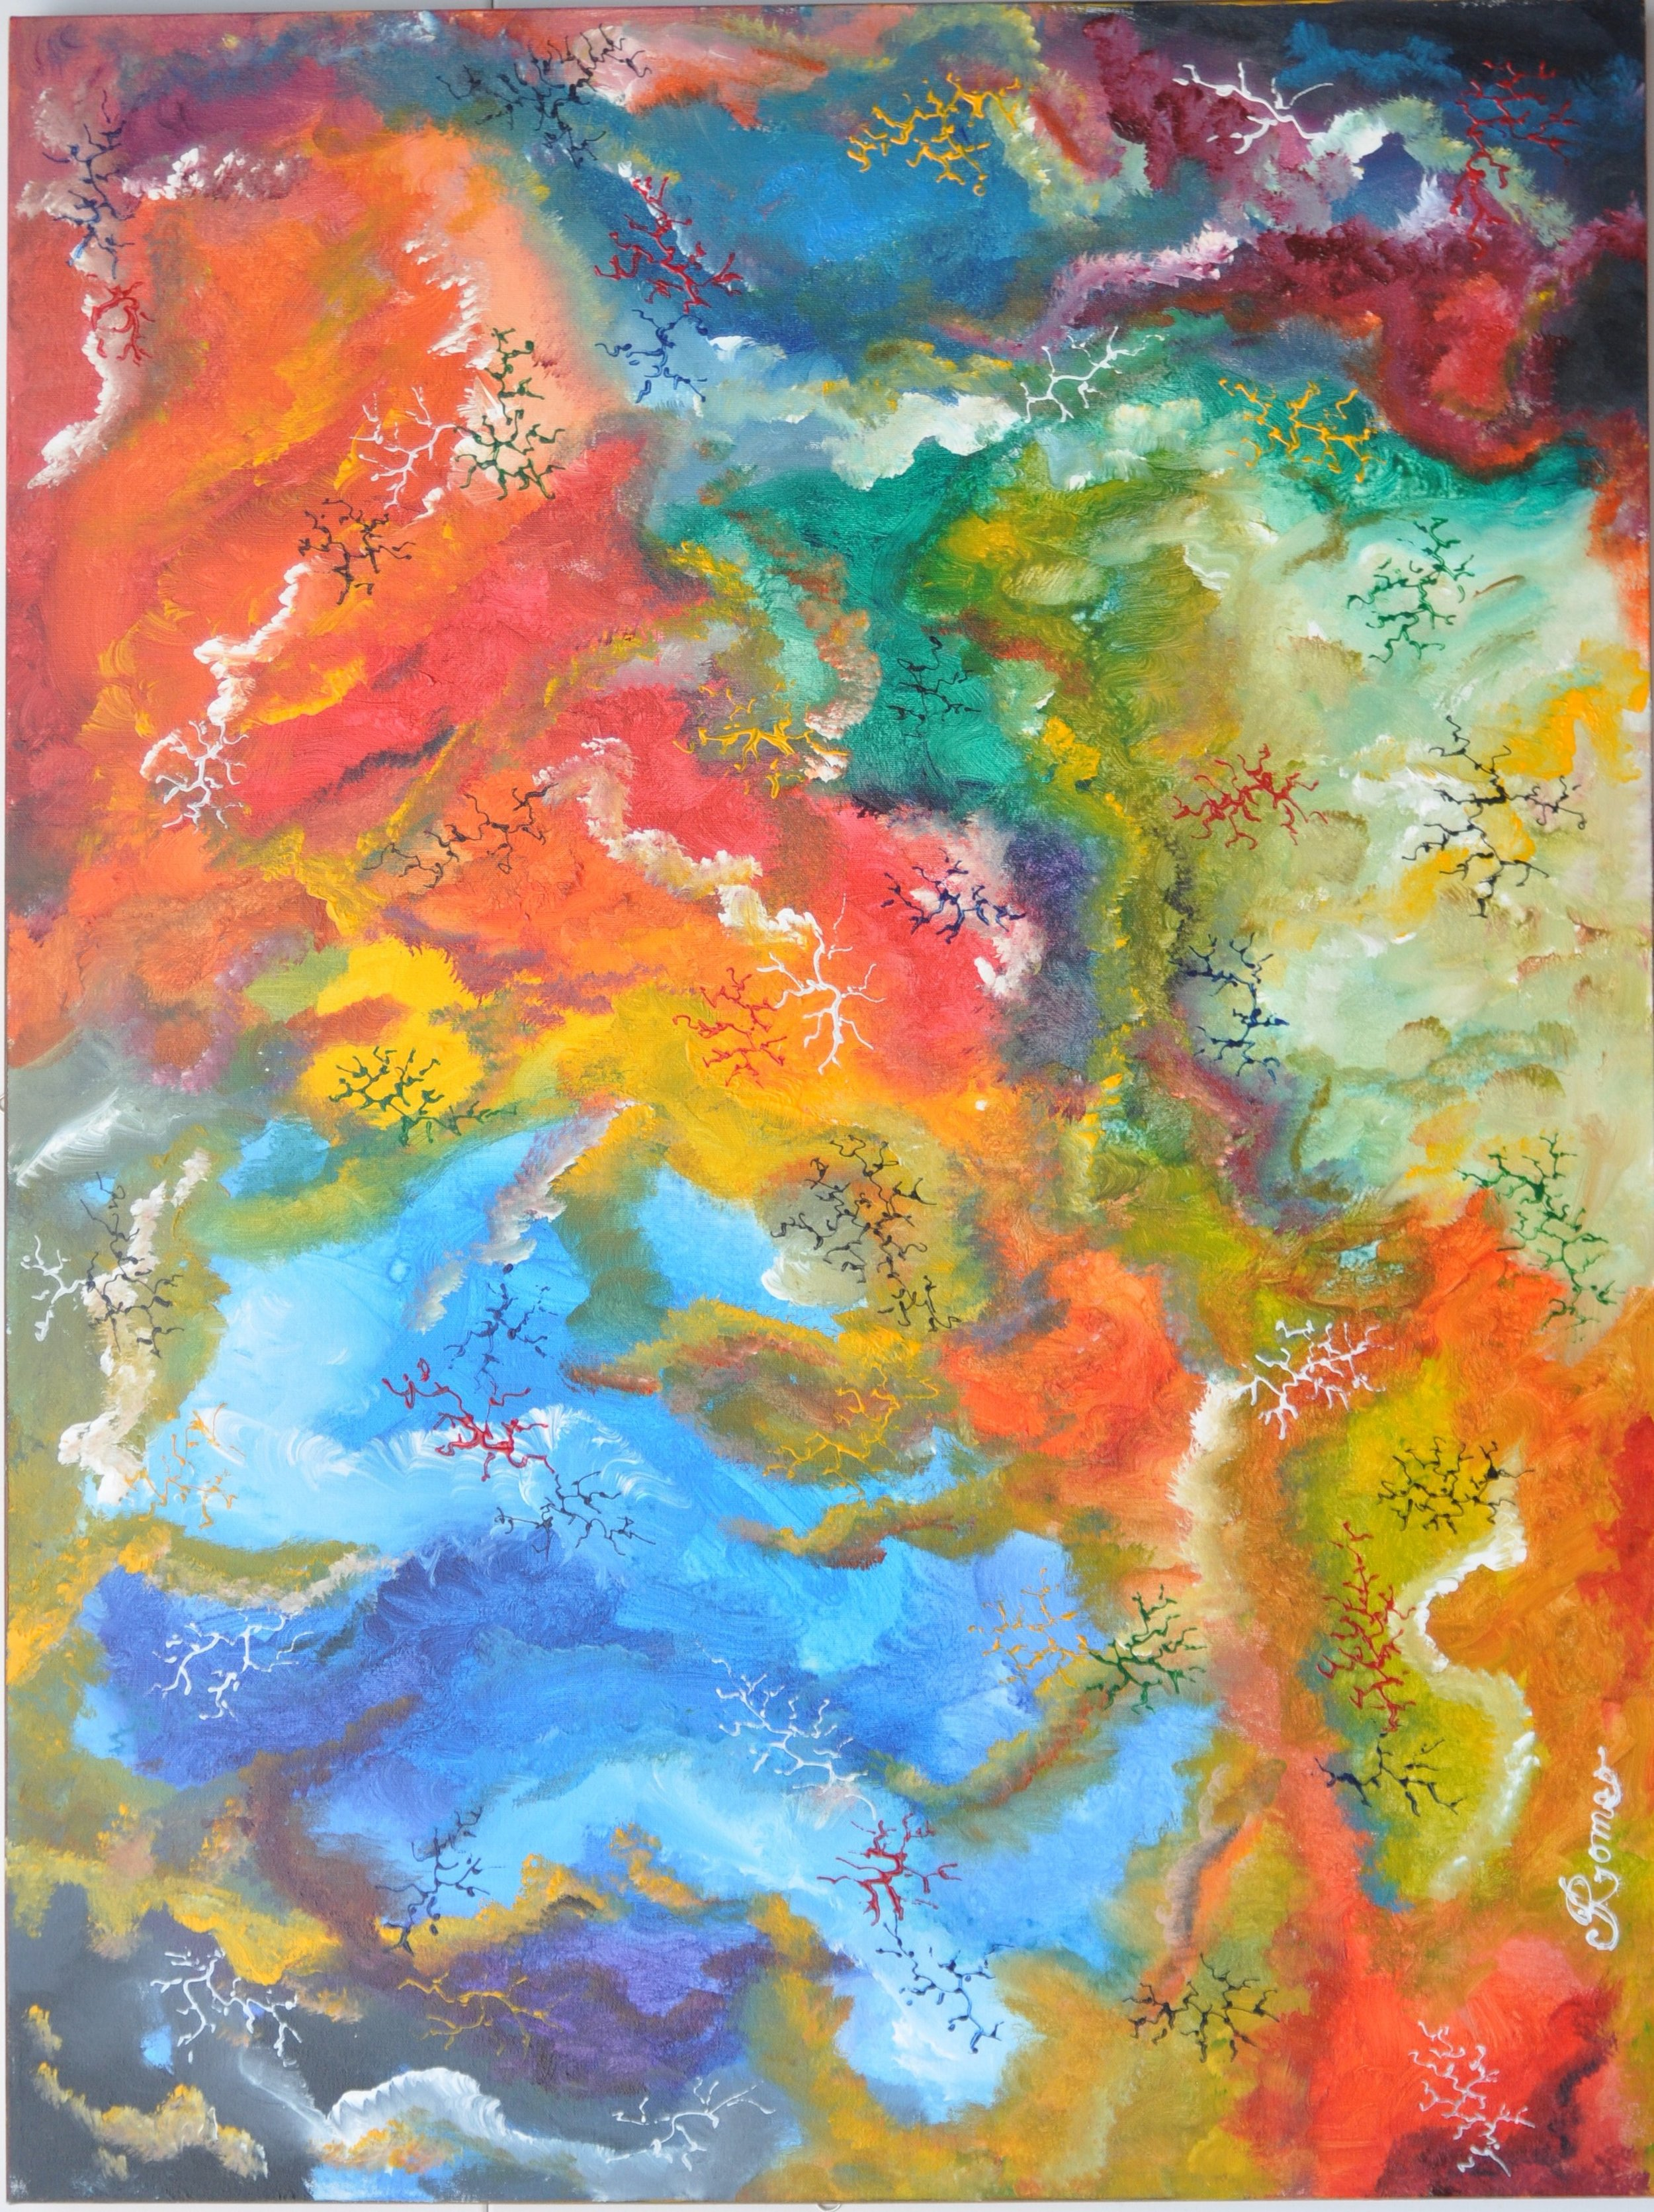 Colours, inside of marble 13, acrylic on canvas, 30X40X1.5 inch, SKU 1011